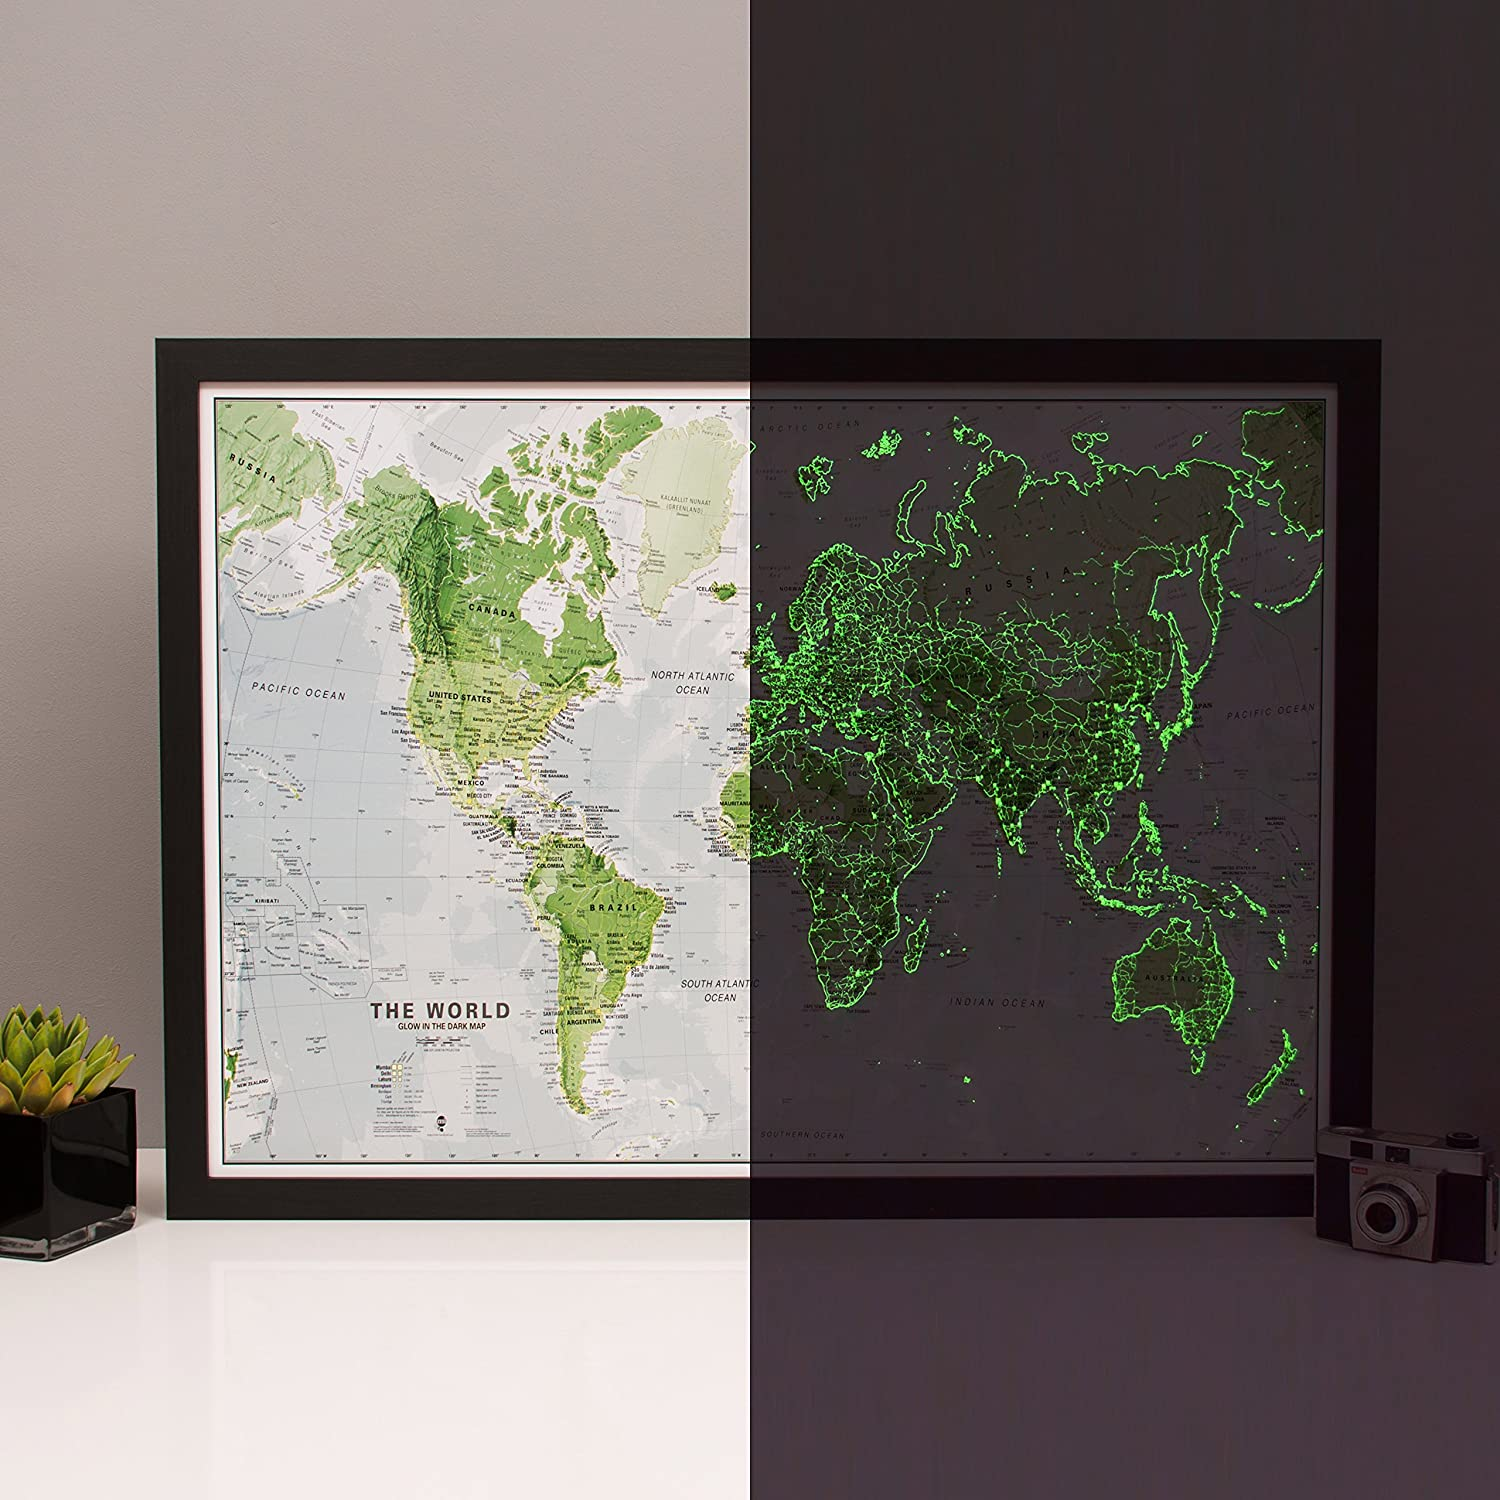 Glow in the dark map of the world map is illuminated at night glow in the dark map of the world map is illuminated at night childrens educational poster amazon office products gumiabroncs Images